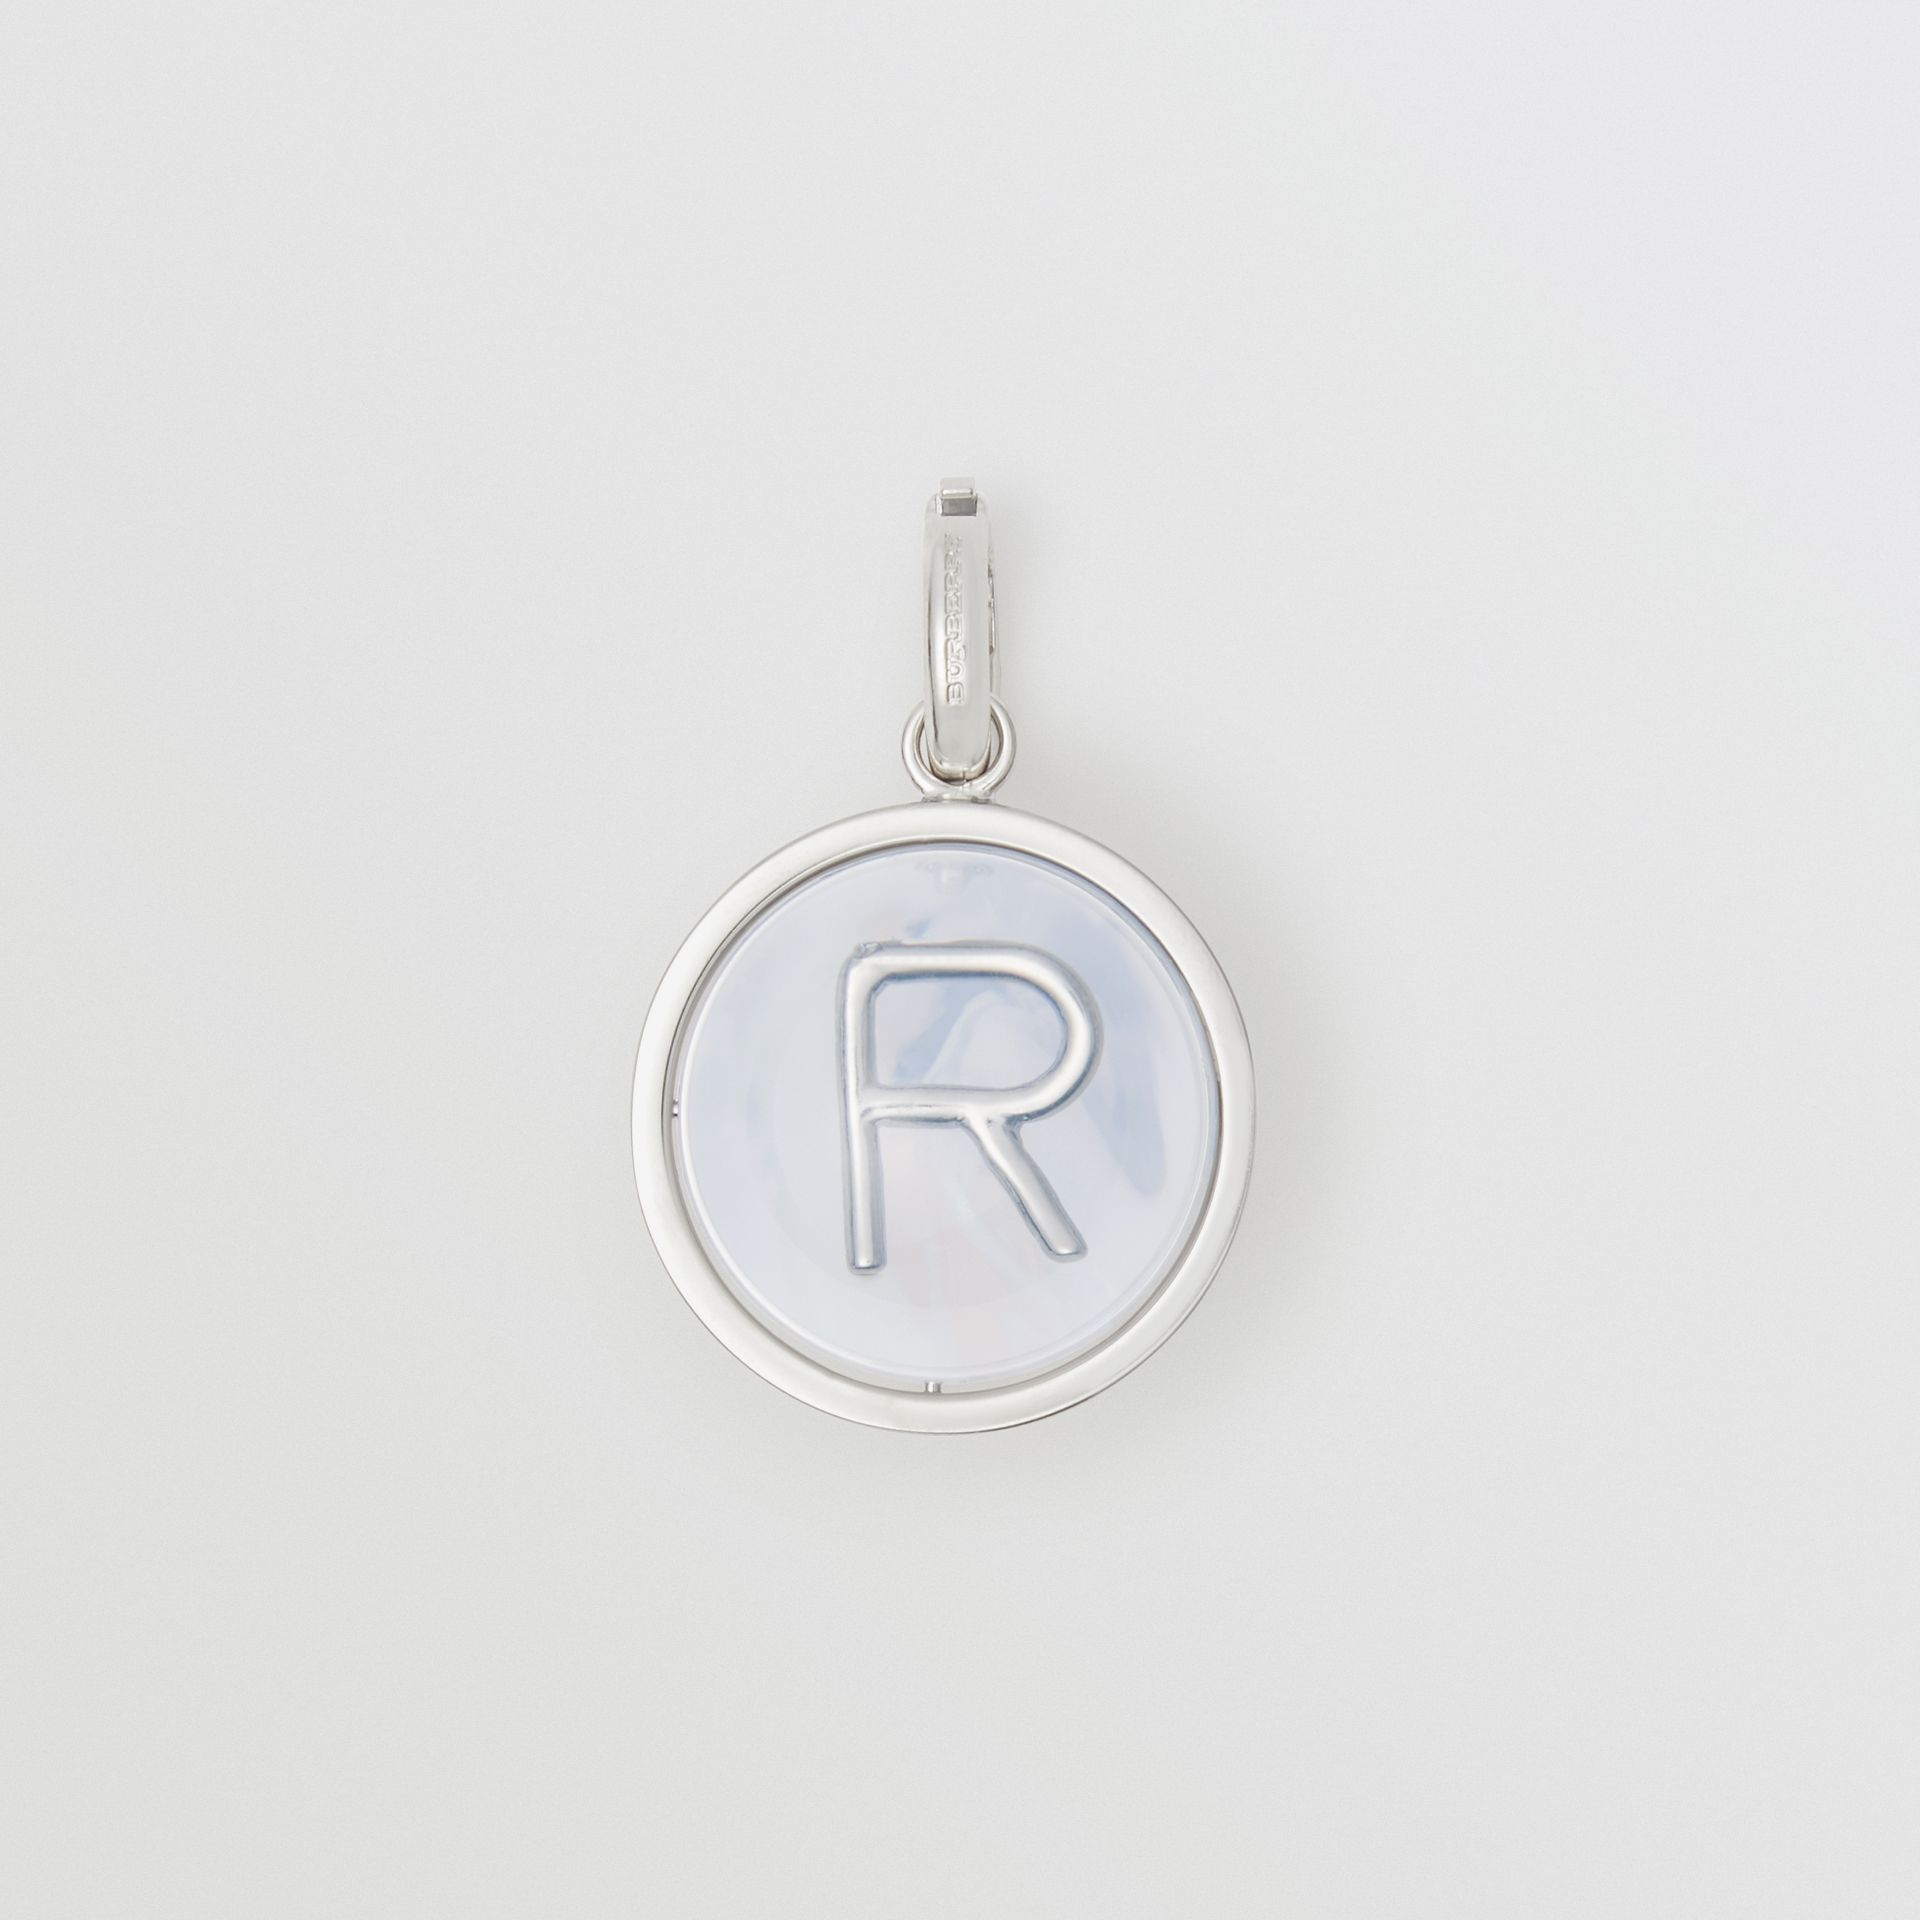 Marbled Resin 'R' Alphabet Charm in Palladio/nacre - Women | Burberry Singapore - gallery image 0